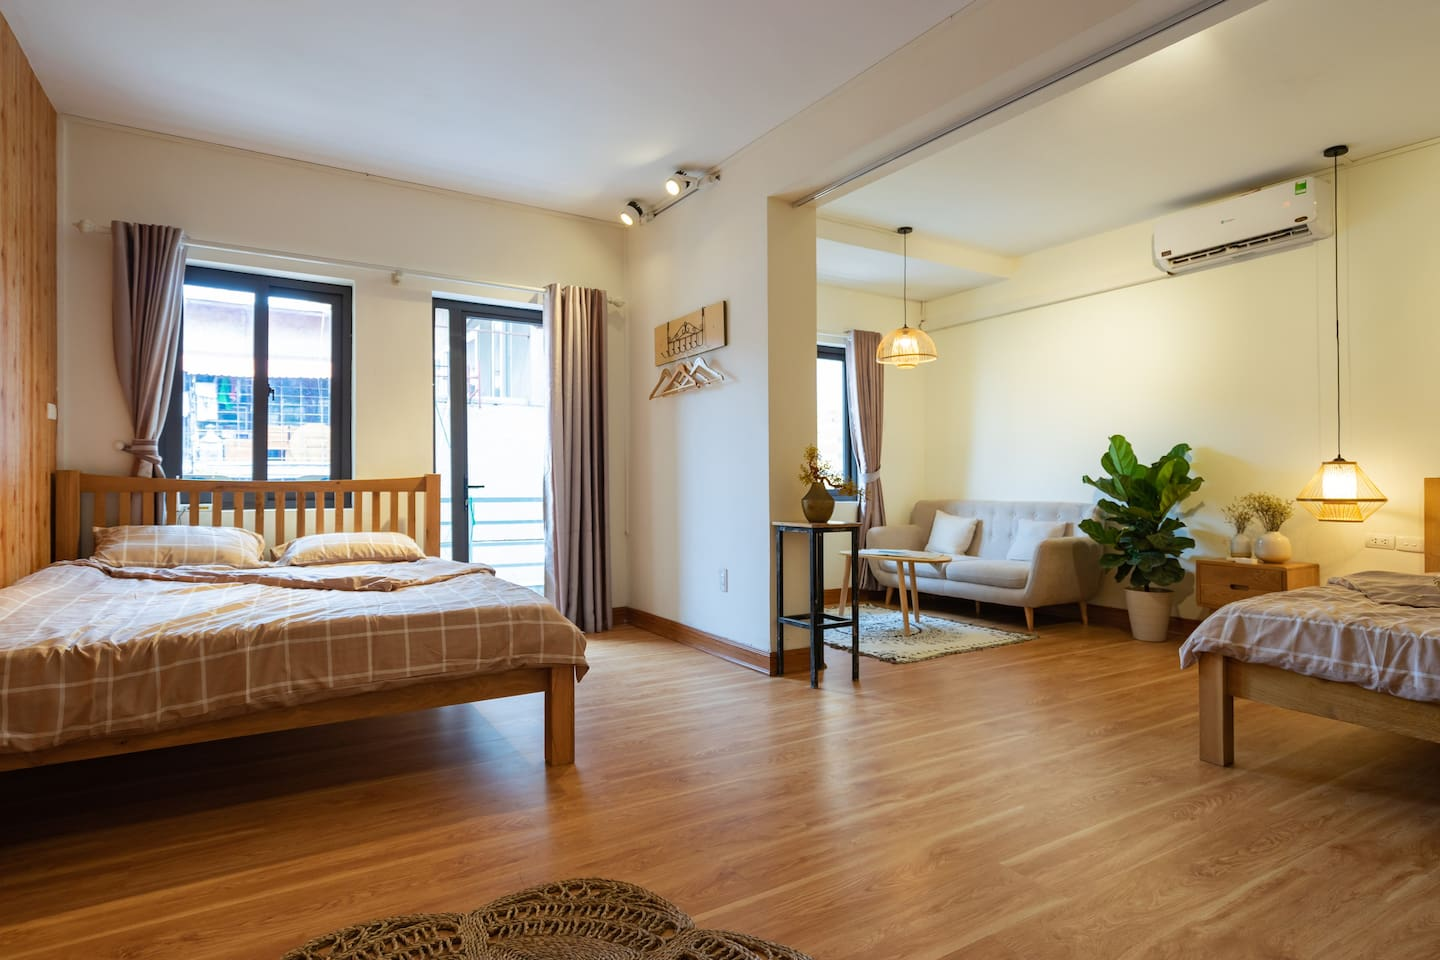 Full-of-light apartment with Cozy and Stylist Design for your relaxing stay.